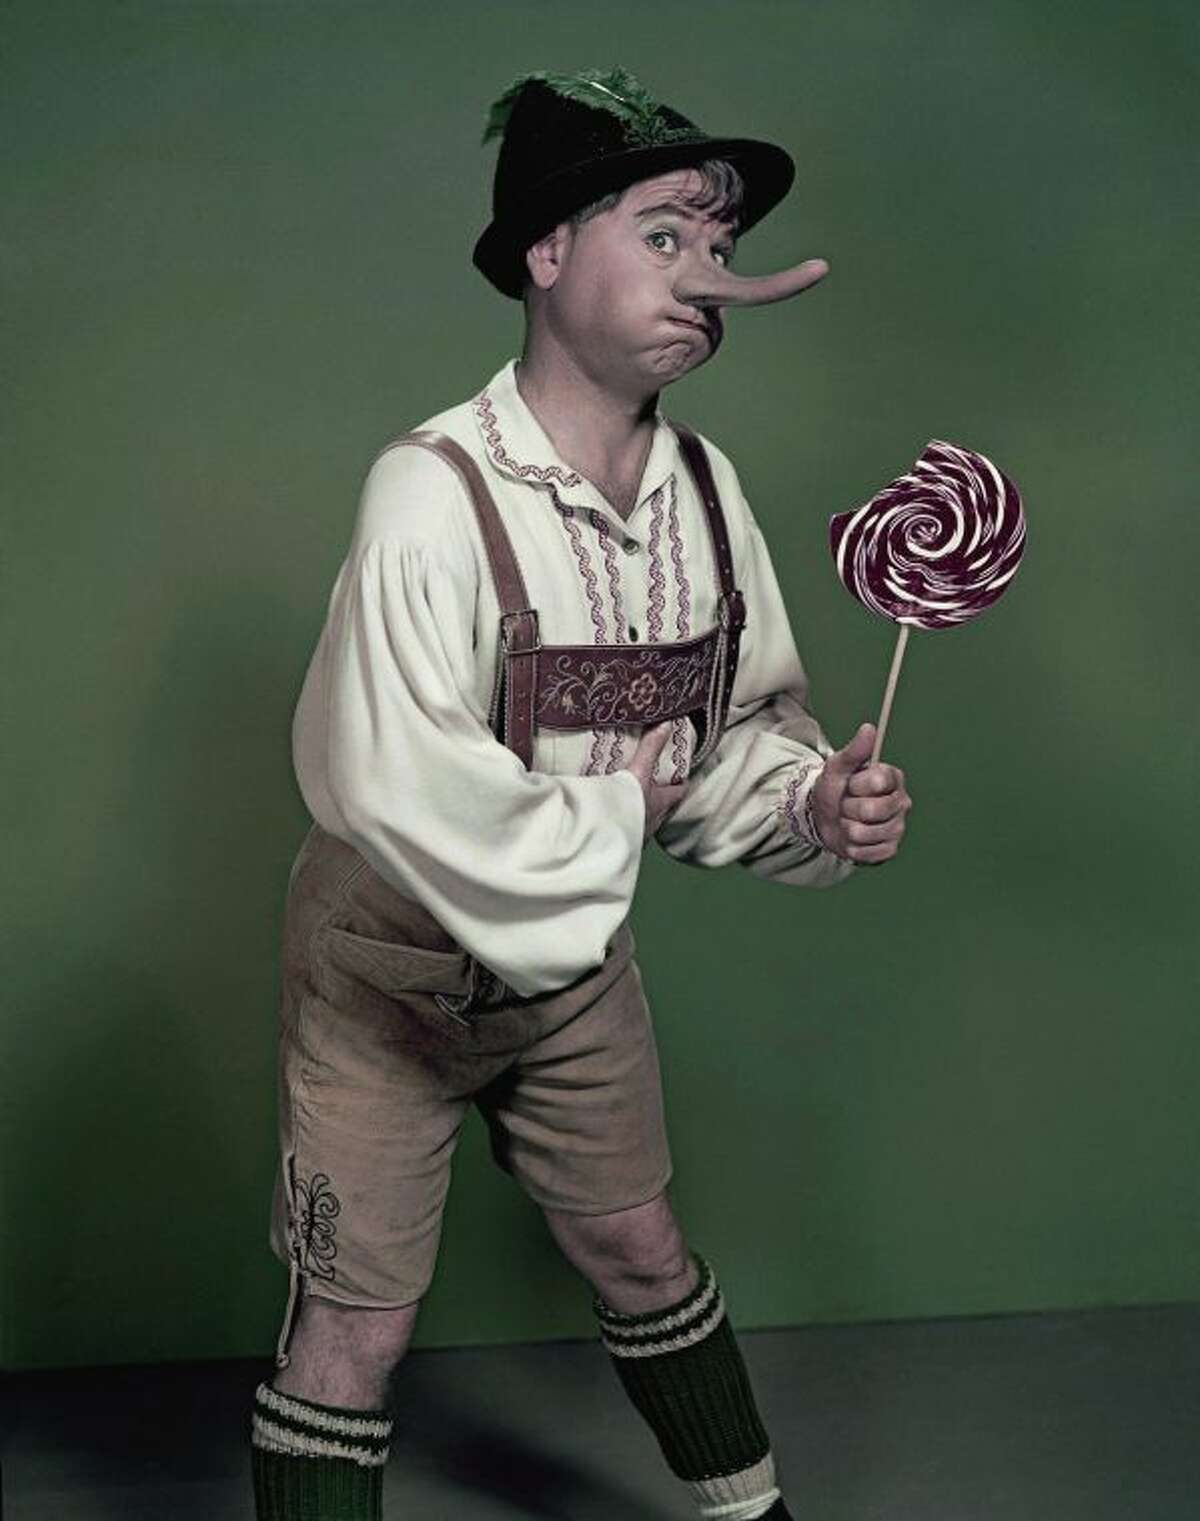 """FILE - Actor Mickey Rooney portrays """"Pinnochio,"""" in this September 1957, file photo. Rooney, a Hollywood legend whose career spanned more than 80 years, has died. He was 93. Los Angeles Police Commander Andrew Smith said that Rooney was with his family when he died Sunday, April 6, 2014, at his North Hollywood home. (AP Photo/File)"""